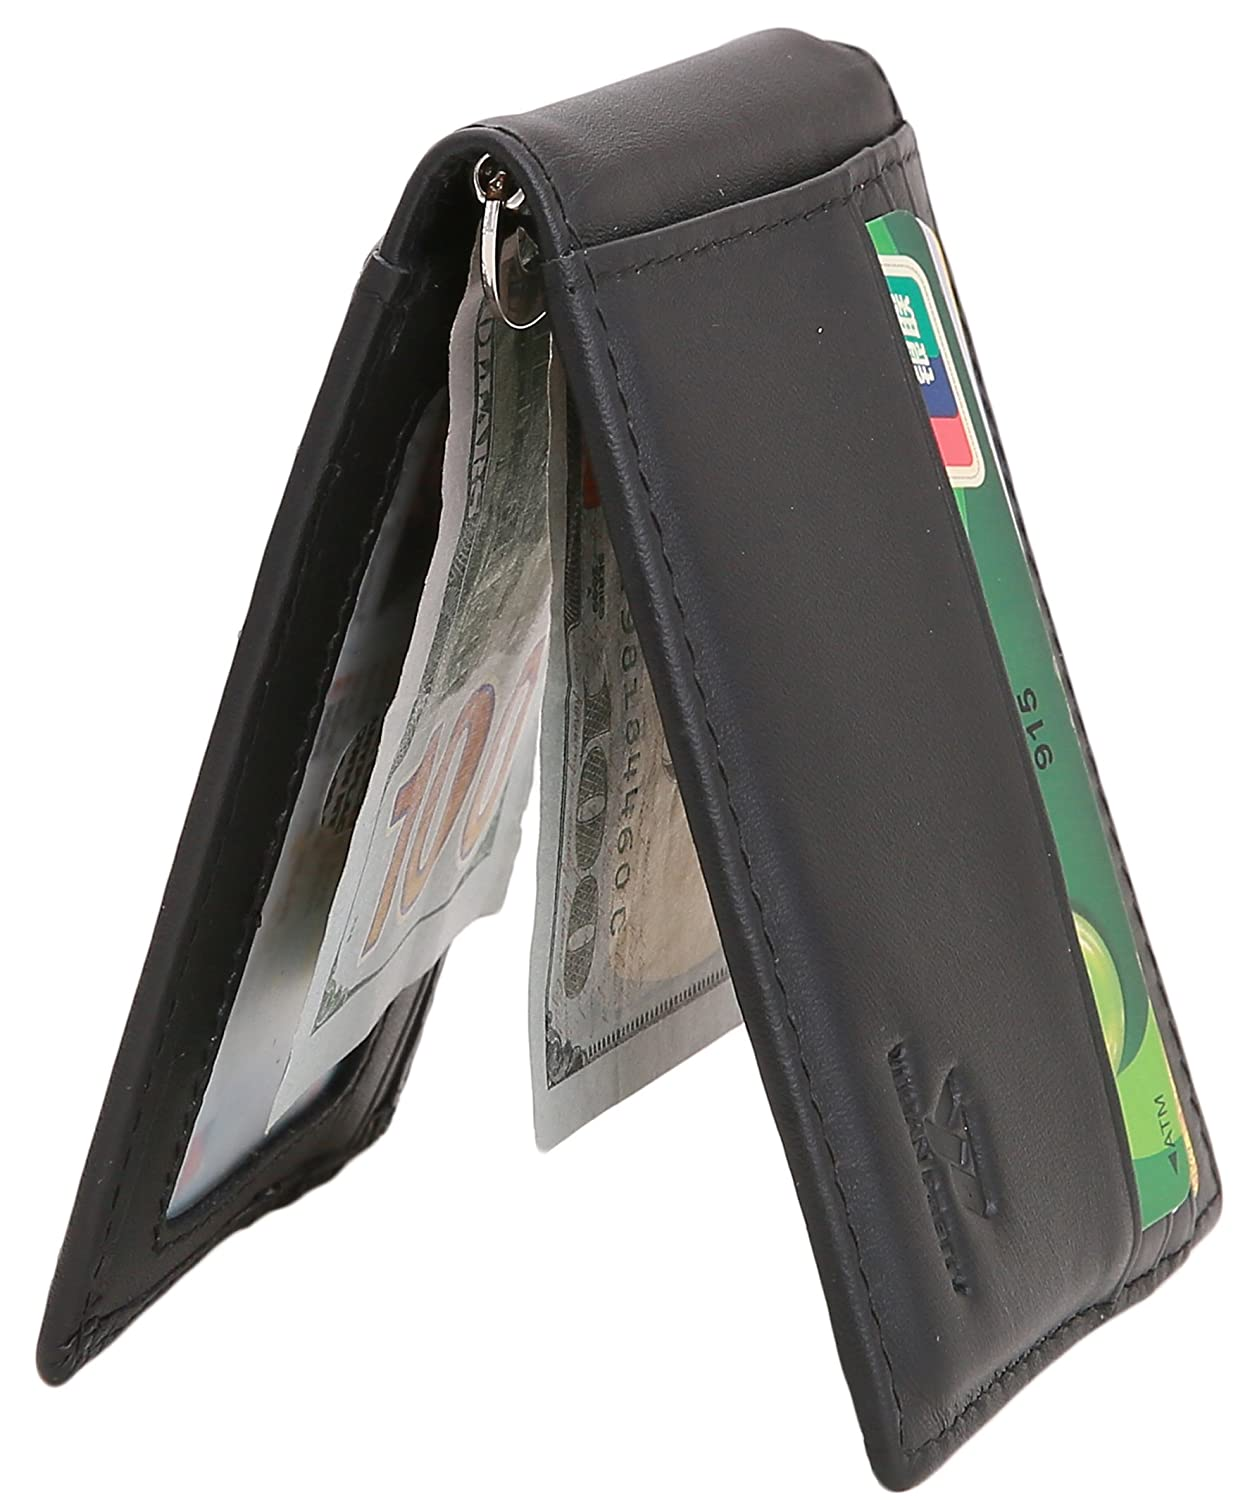 Mens Bifold Money Clip Card Wallet Slim Leather Front Pocket Wallet RFID Blocking (Coffee) MC046-YP1805091C2